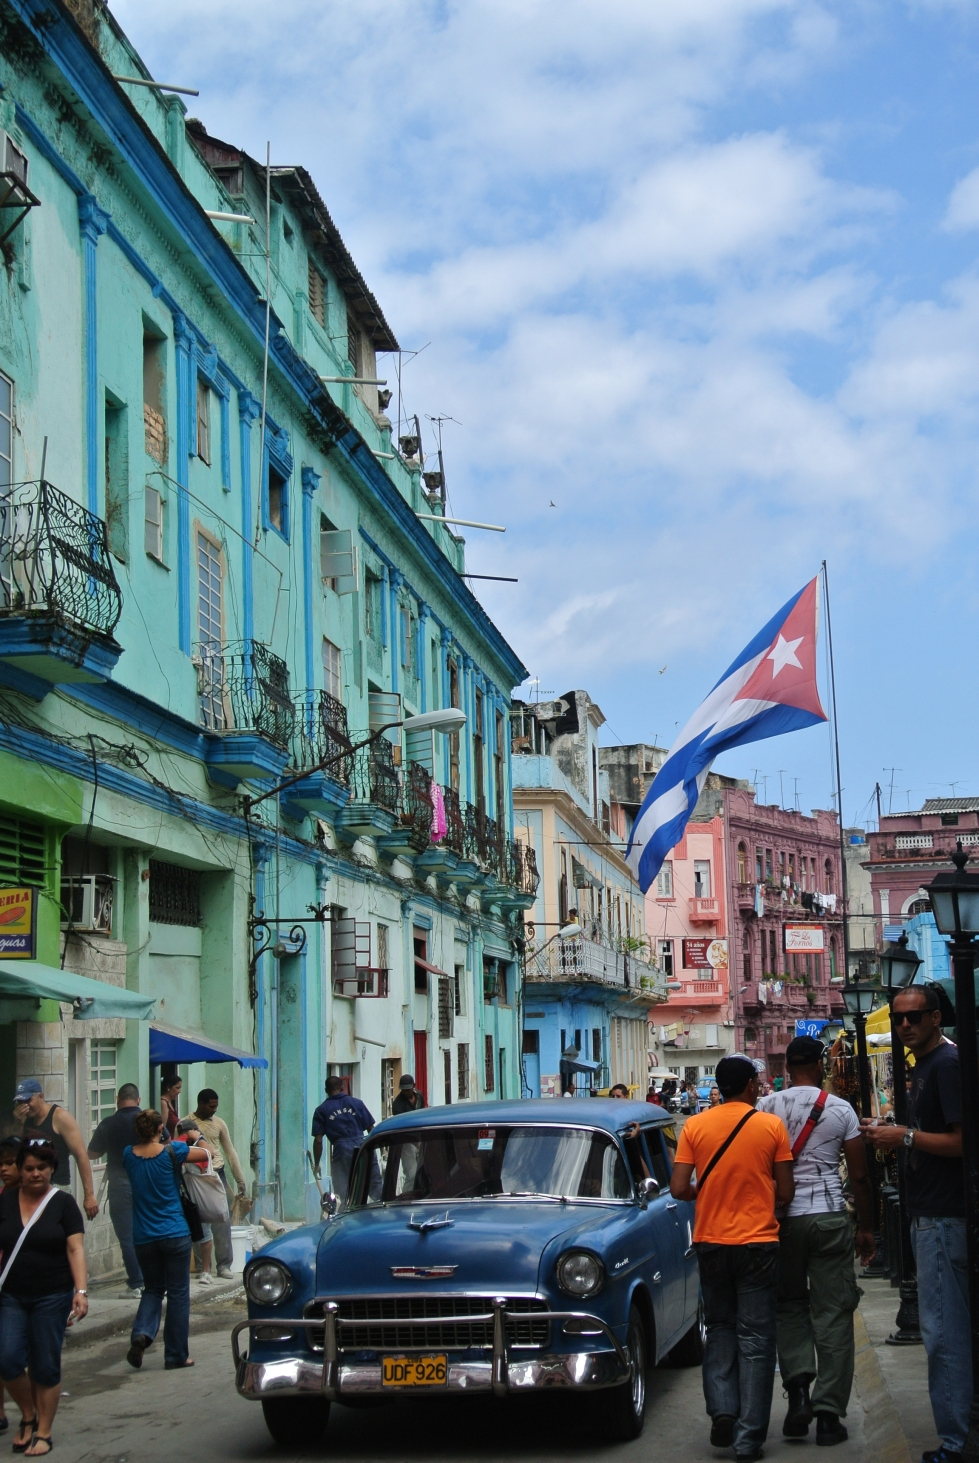 Blue vintage car, Cuba flag flying high in Havana